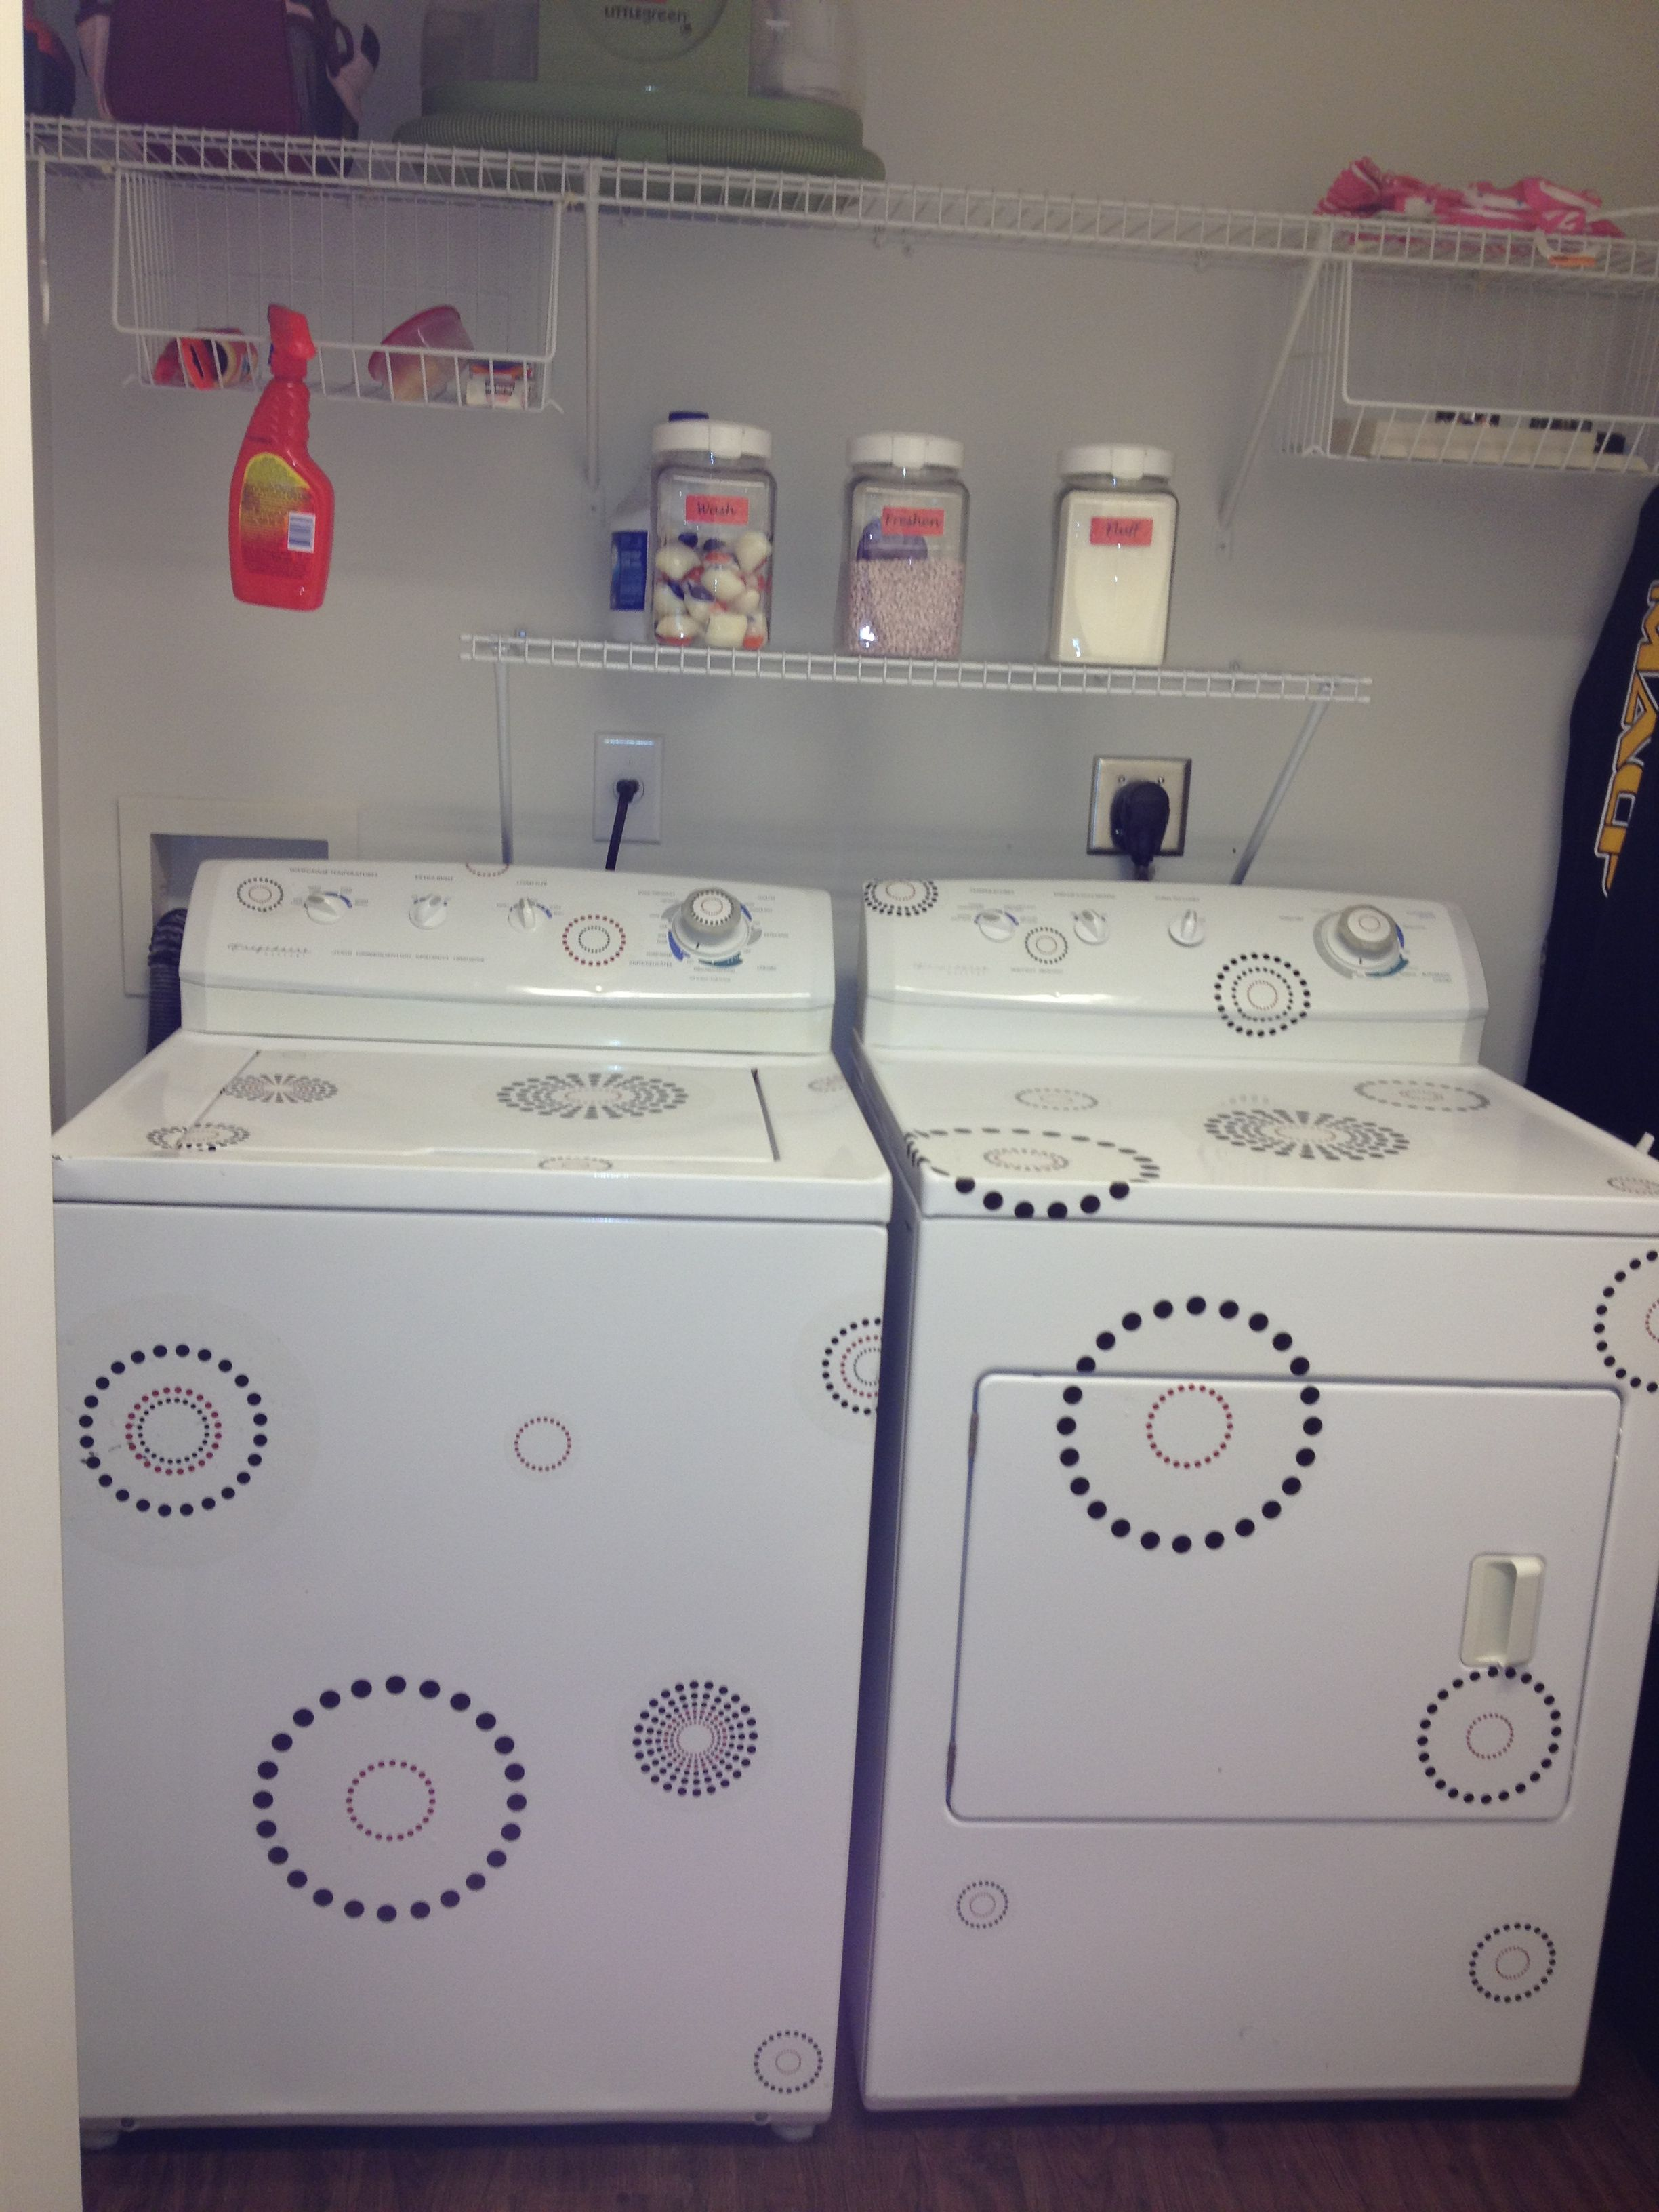 Decorate Your Washer And Dryer Using Removable Stickers From